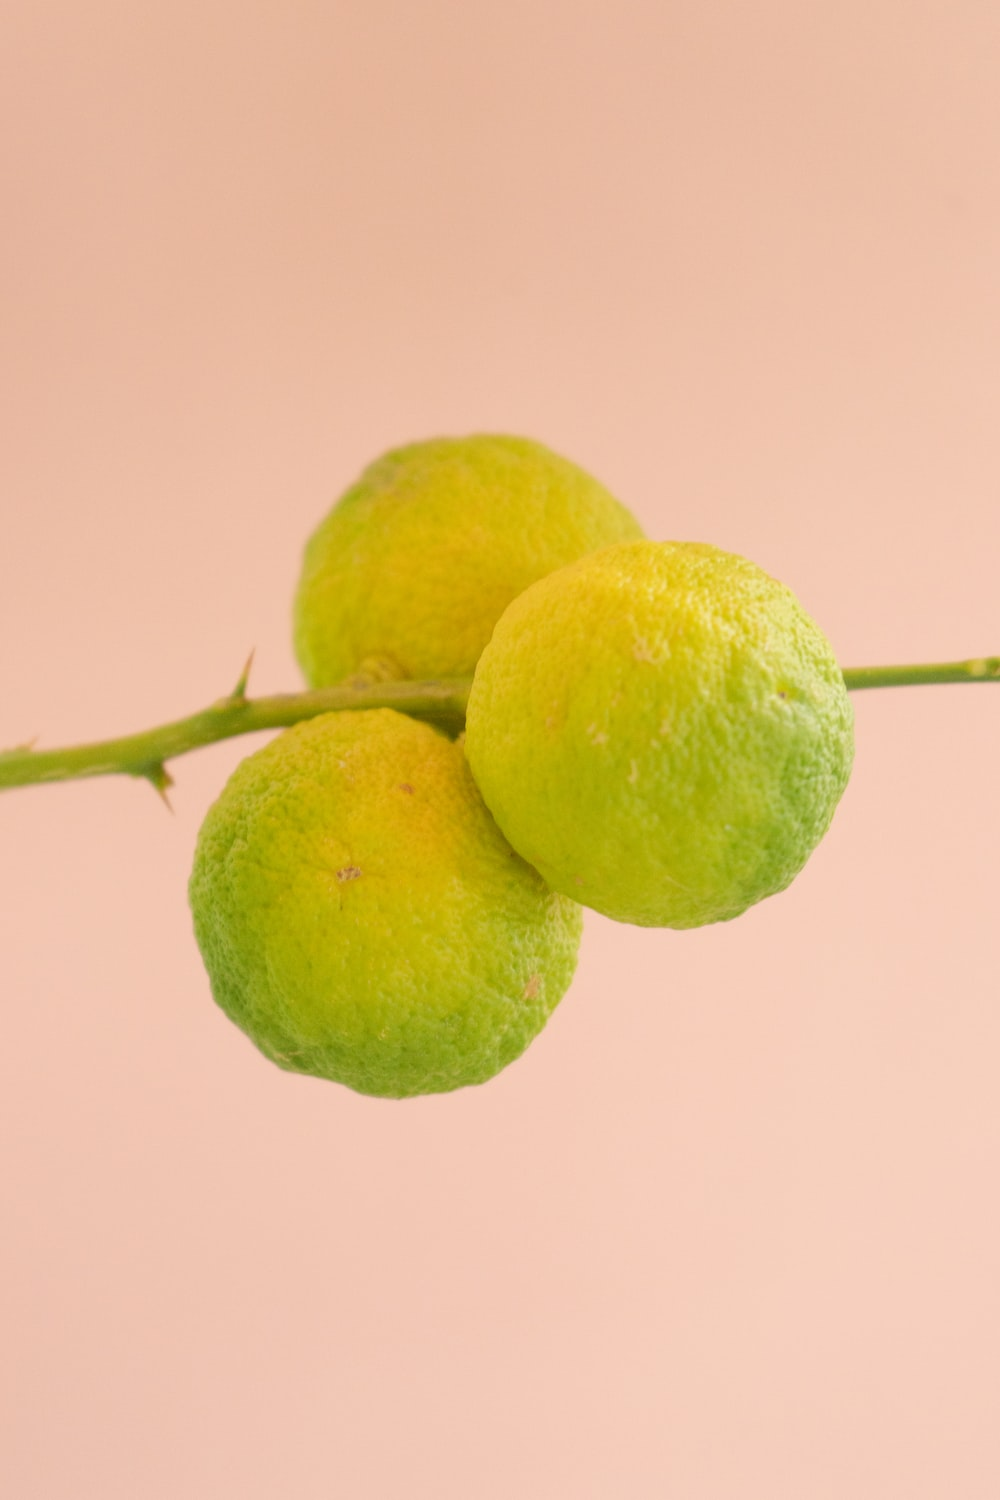 two yellow fruits on pink background